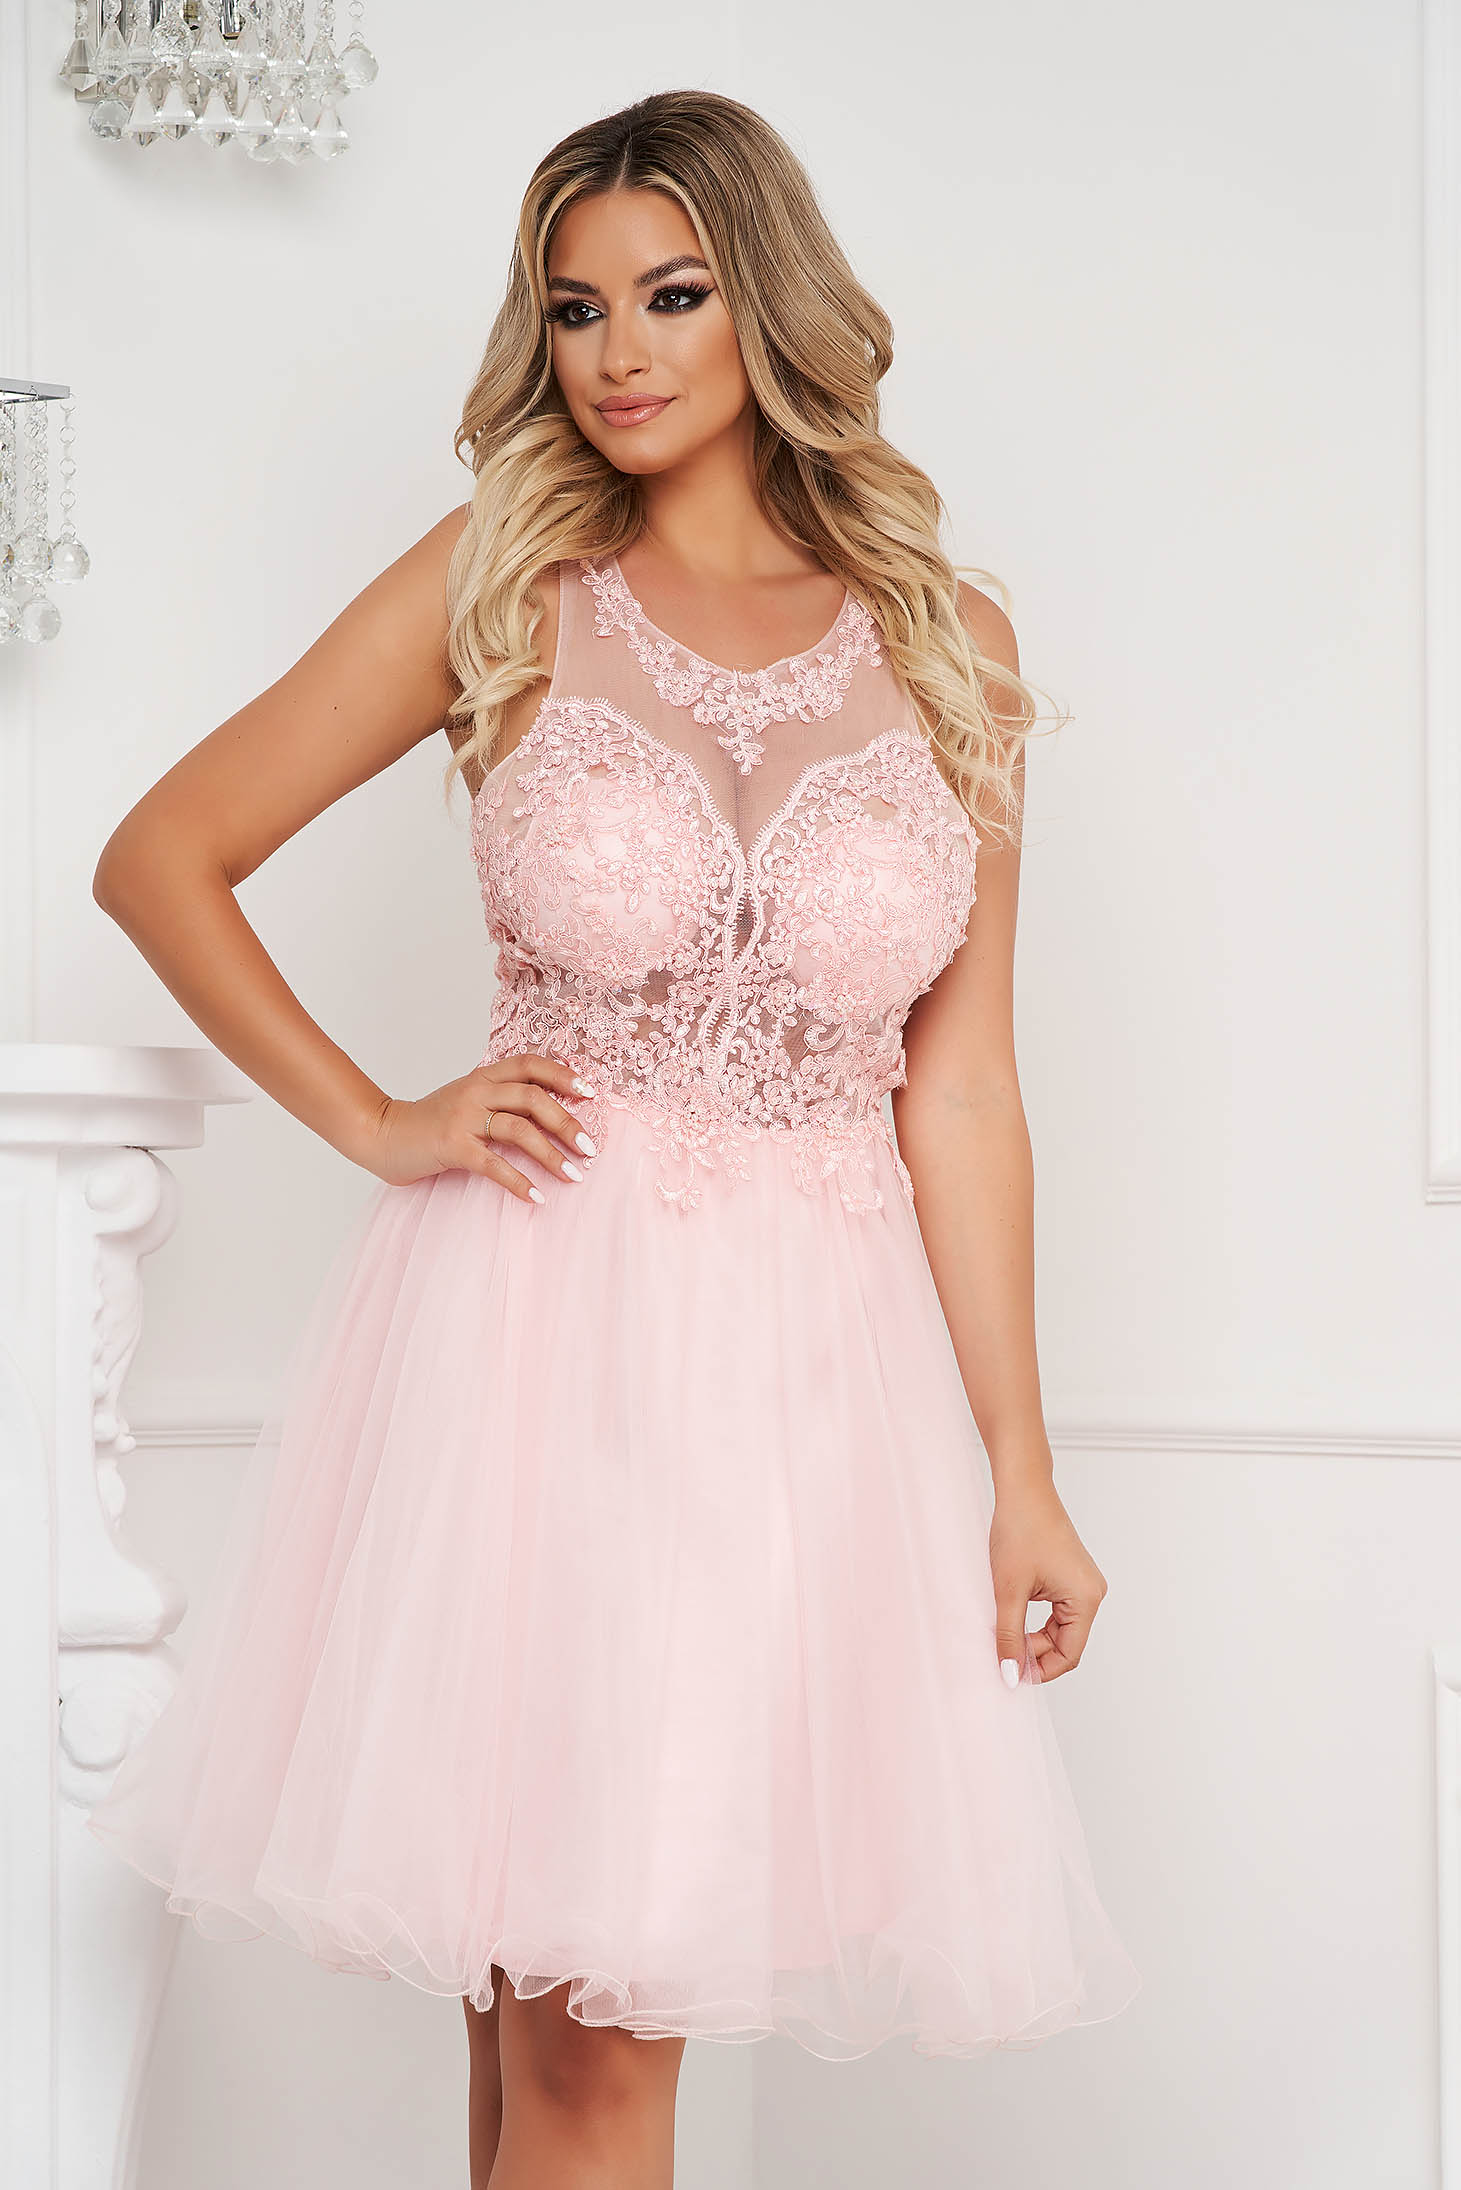 Lightpink dress short cut occasional cloche with lace details with pearls from tulle